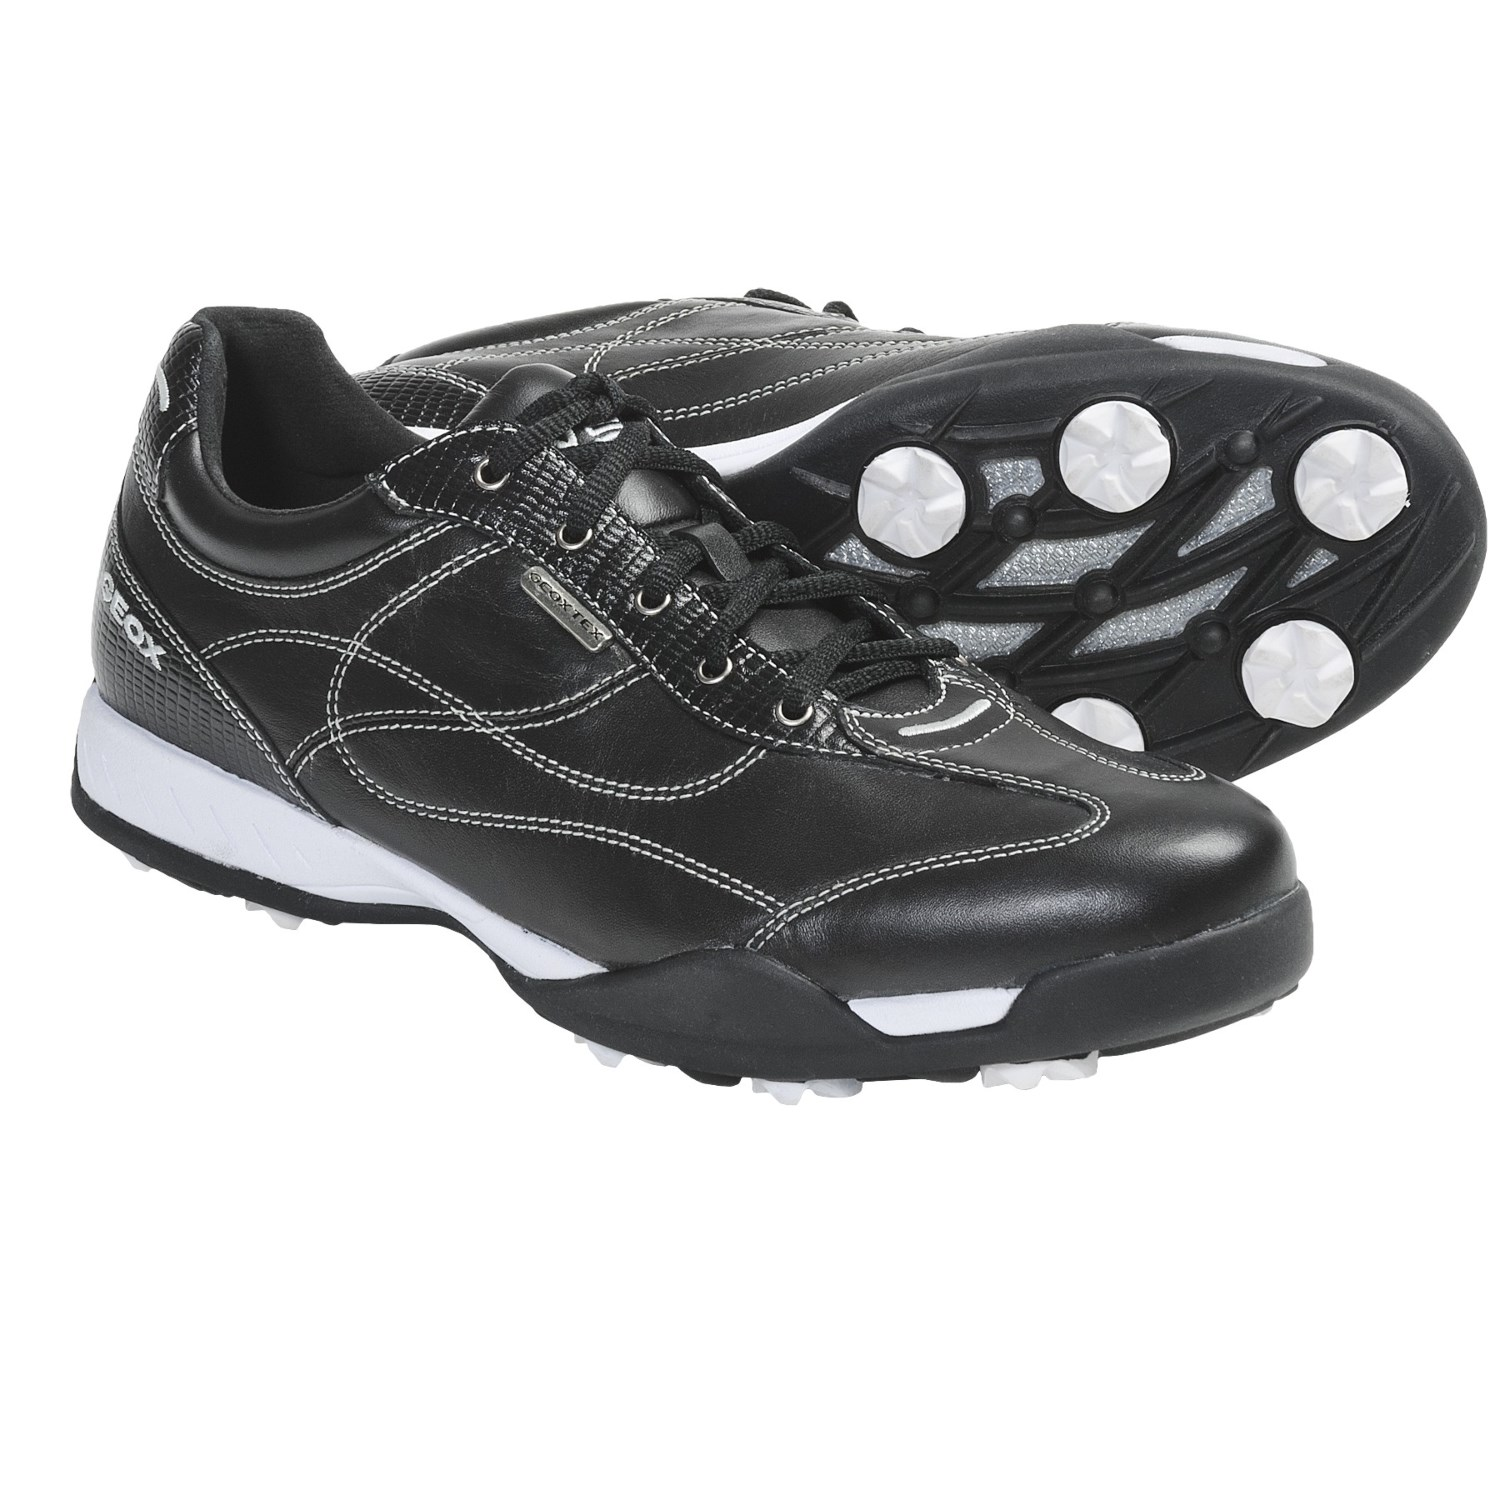 Sporting Goods > Golf > Golf Shoes | eBay